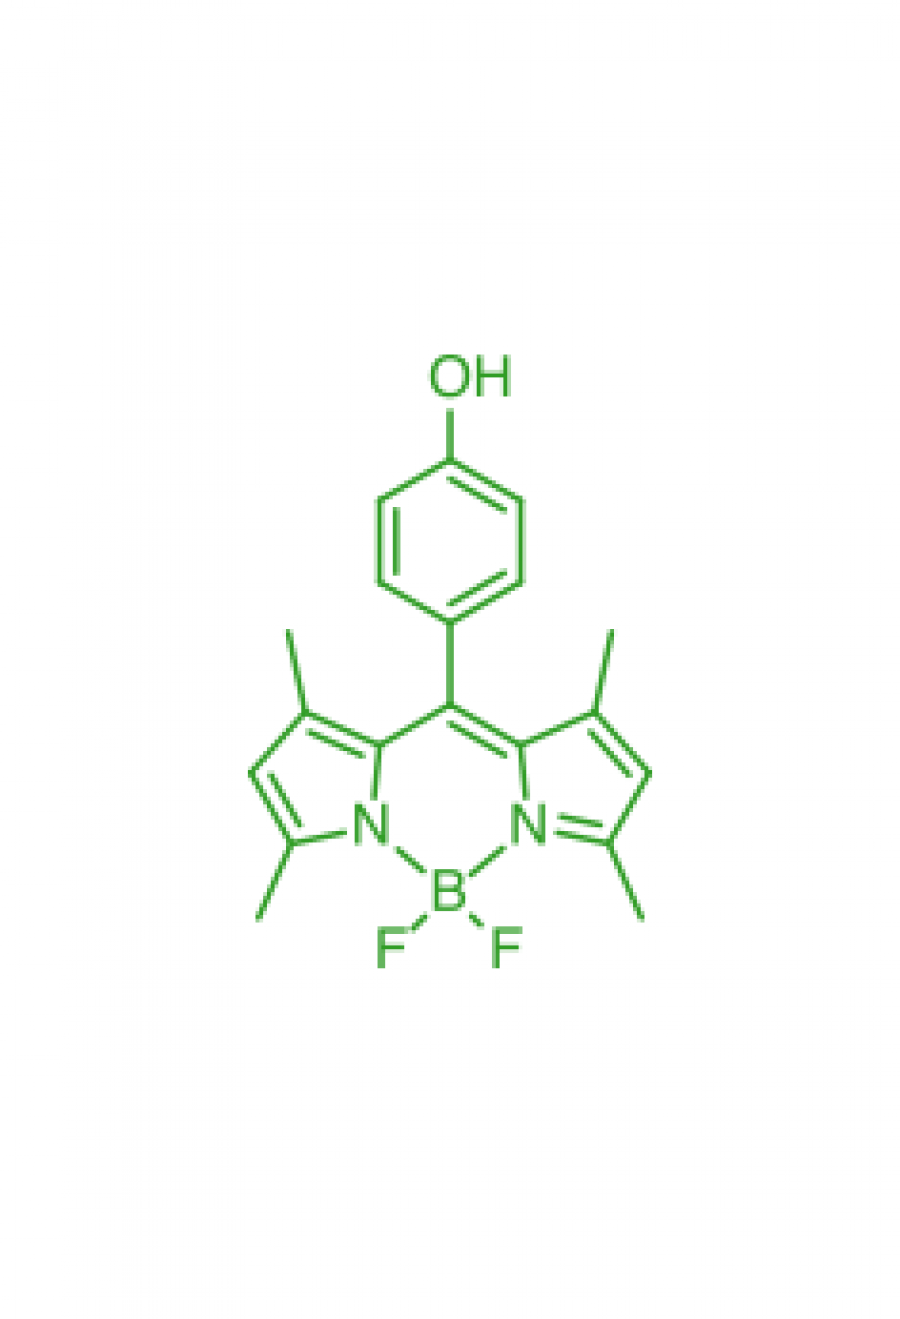 1,3,5,7-tetramethyl-8-(4-hydroxyphenyl)BODIPY